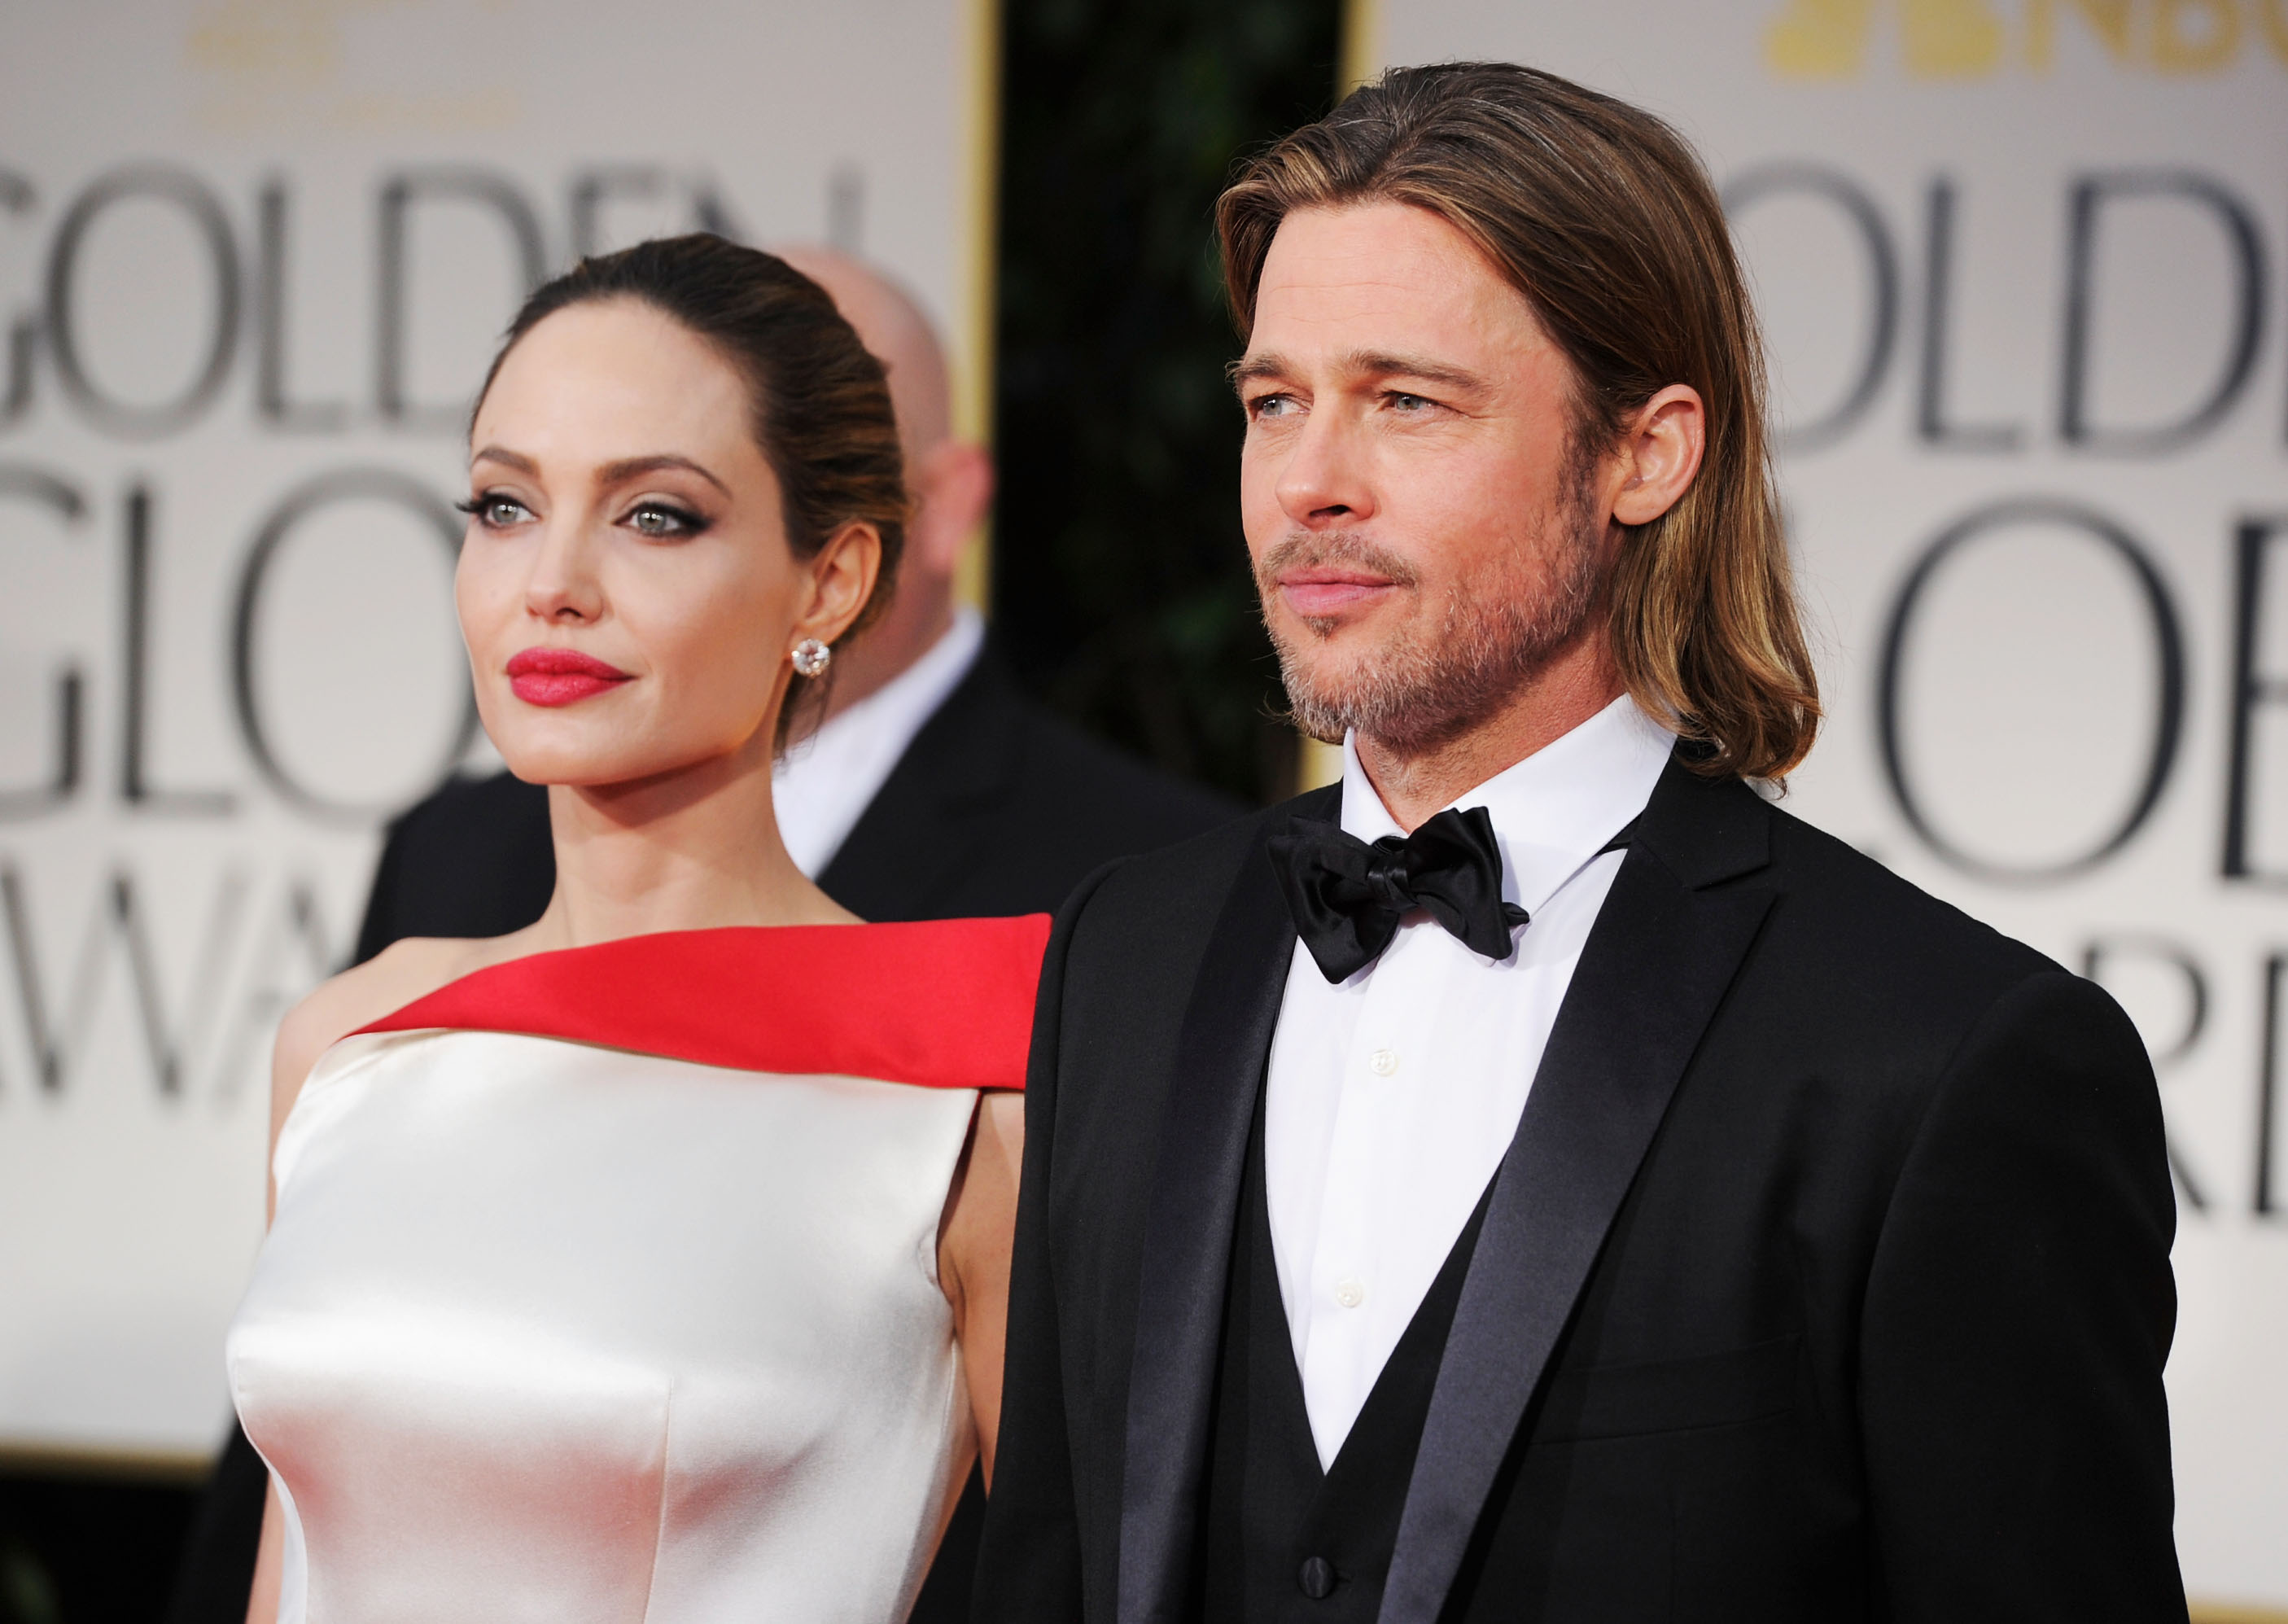 Angelina Jolie Furious Over This Photo Of Brad And Selena Gomez GettyImages 137133749